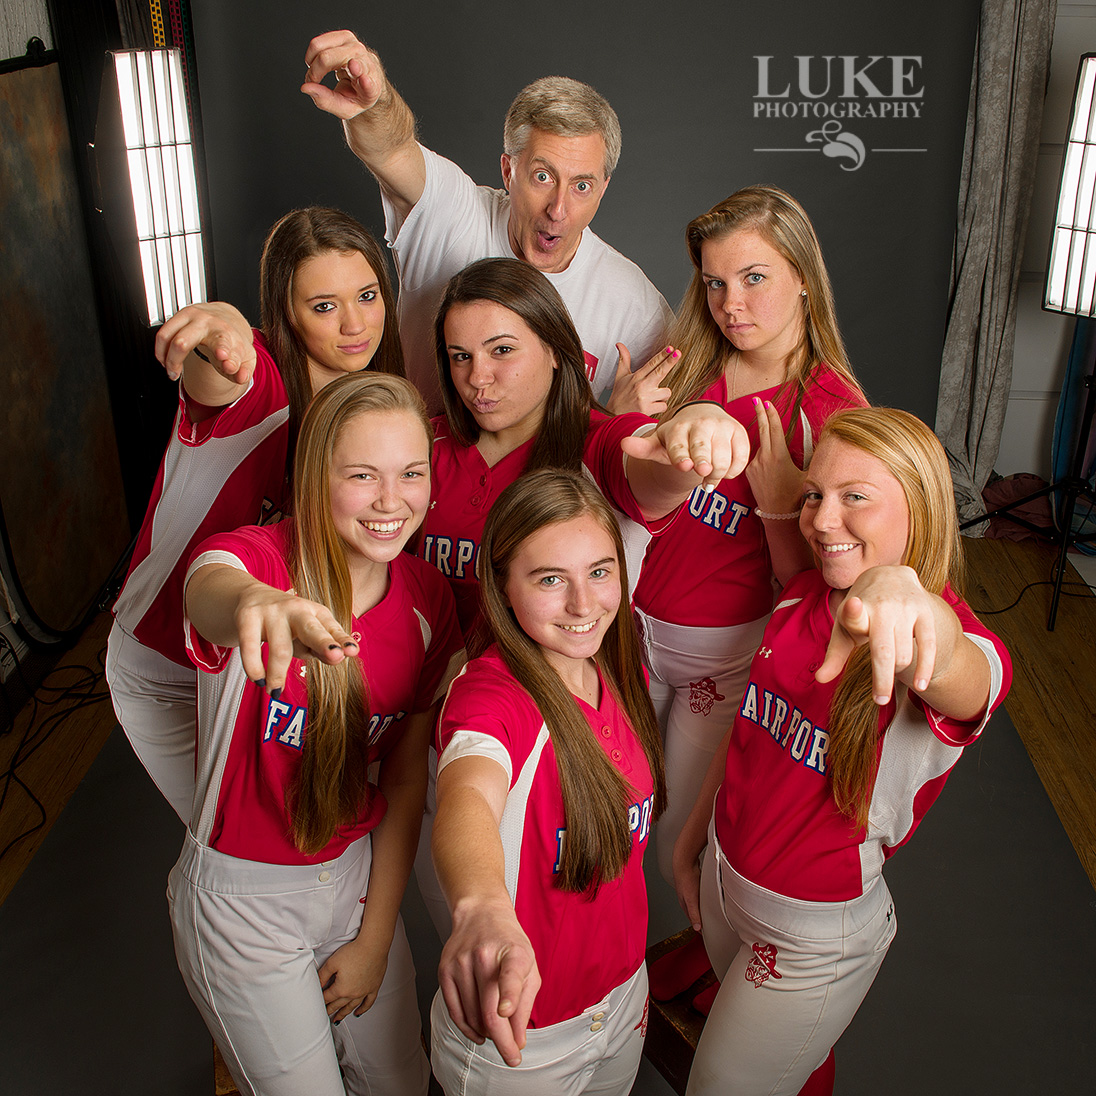 Luke Photography_Softball Squad.jpg